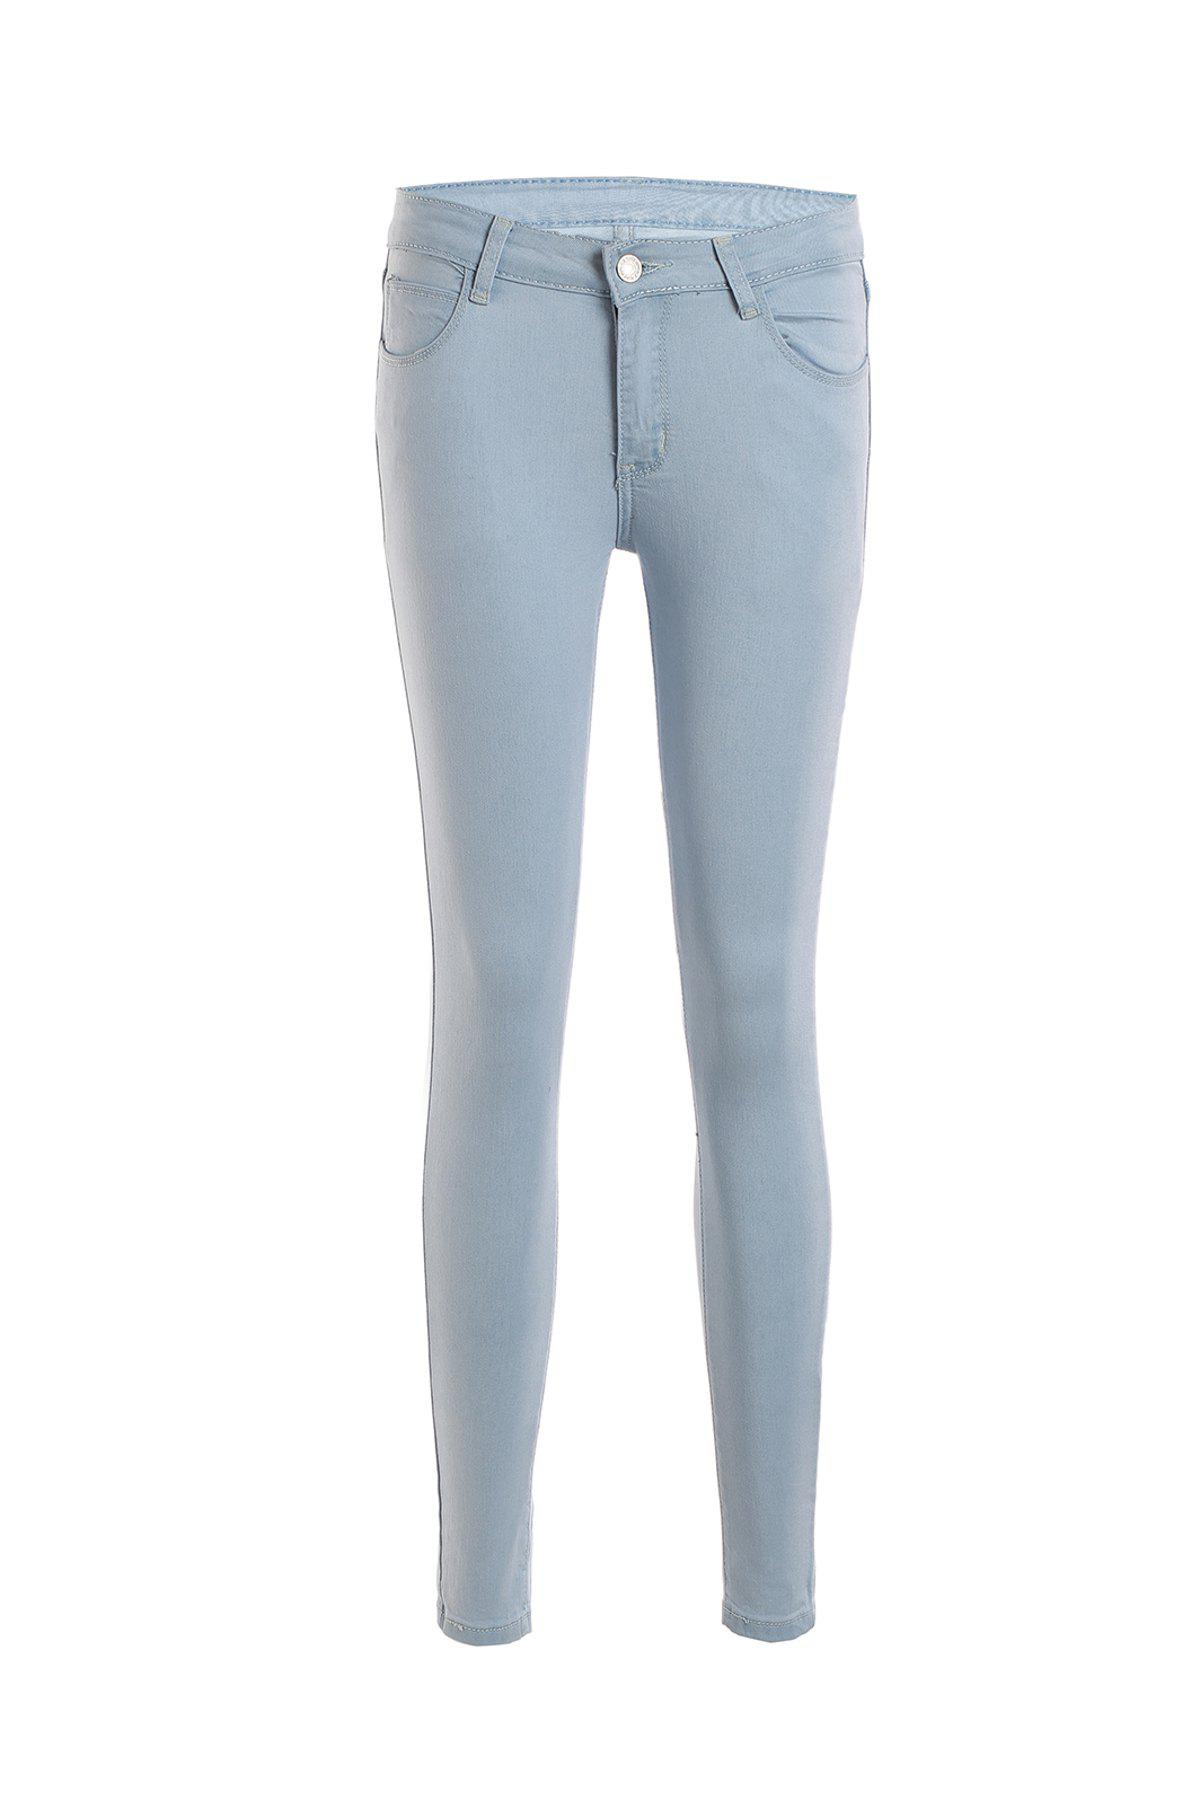 Stylish Mid-Waisted Bleach Wash Slimming Women's Jeans - BLUE M